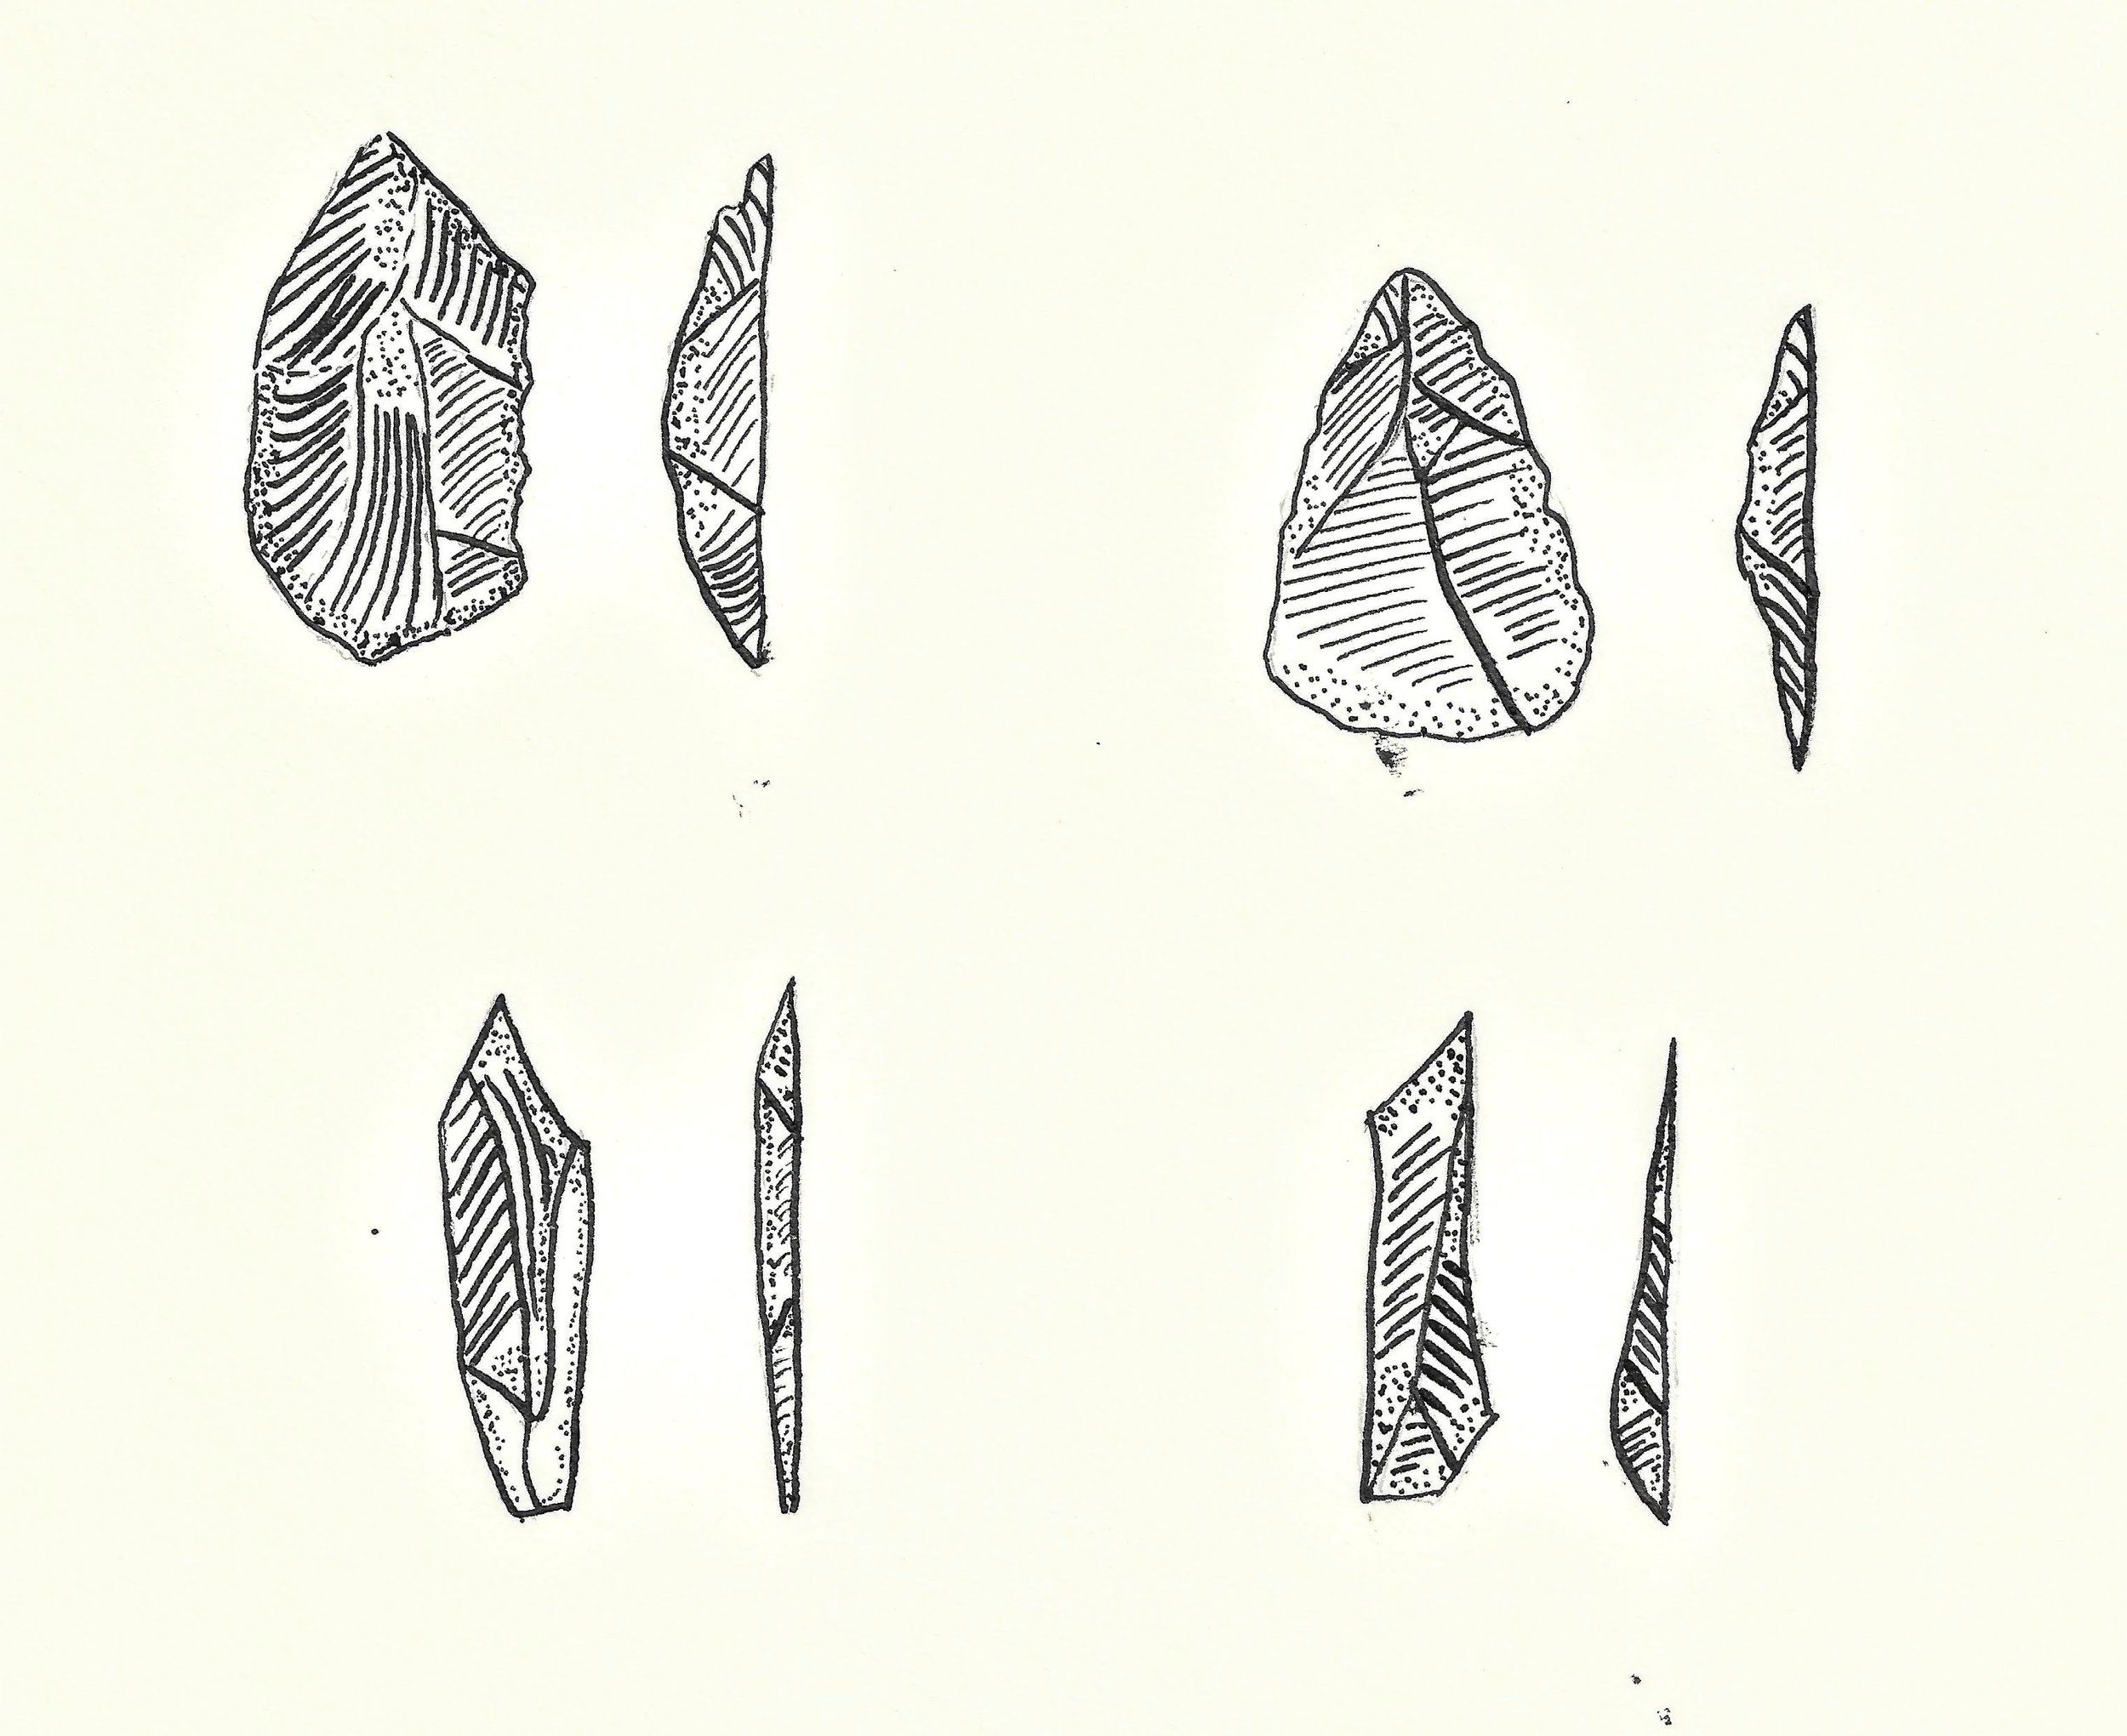 Copy of Copy of As stone tools evolved, they got smaller during the middle palaeolithic period-- a bit like the shrinking sizes of mobile phones and laptops of today.